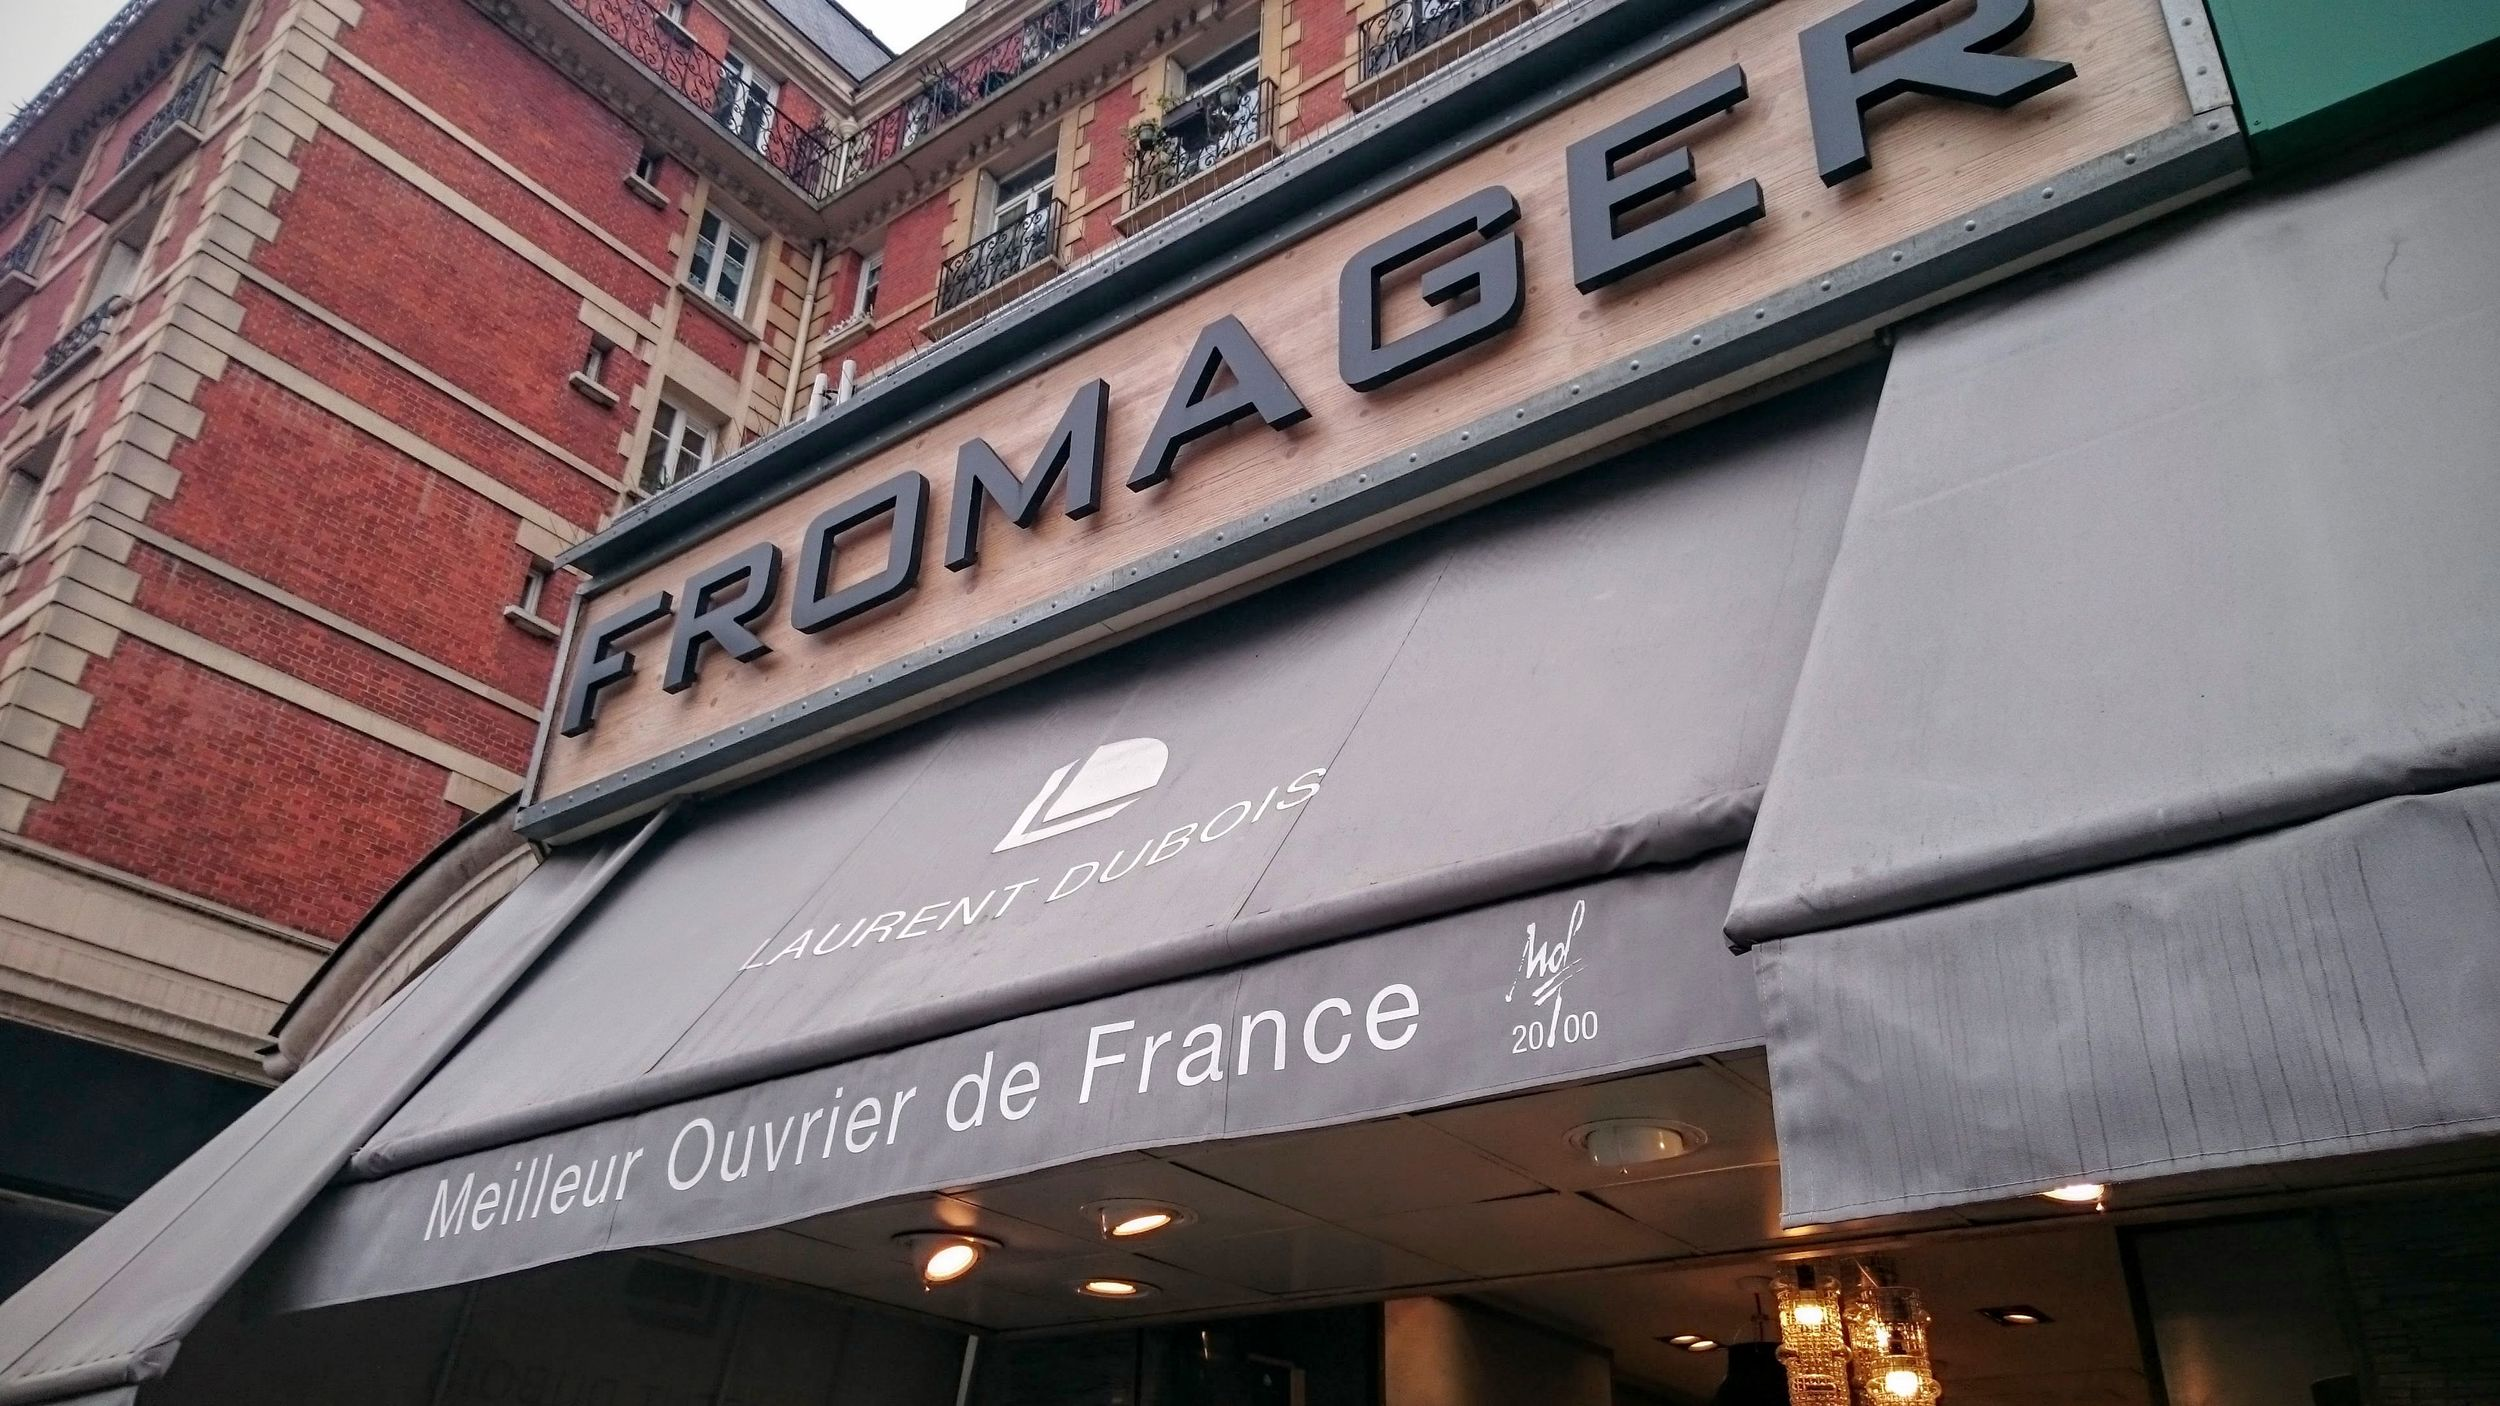 Fromagerie Laurent Dubois at the marché Maubert